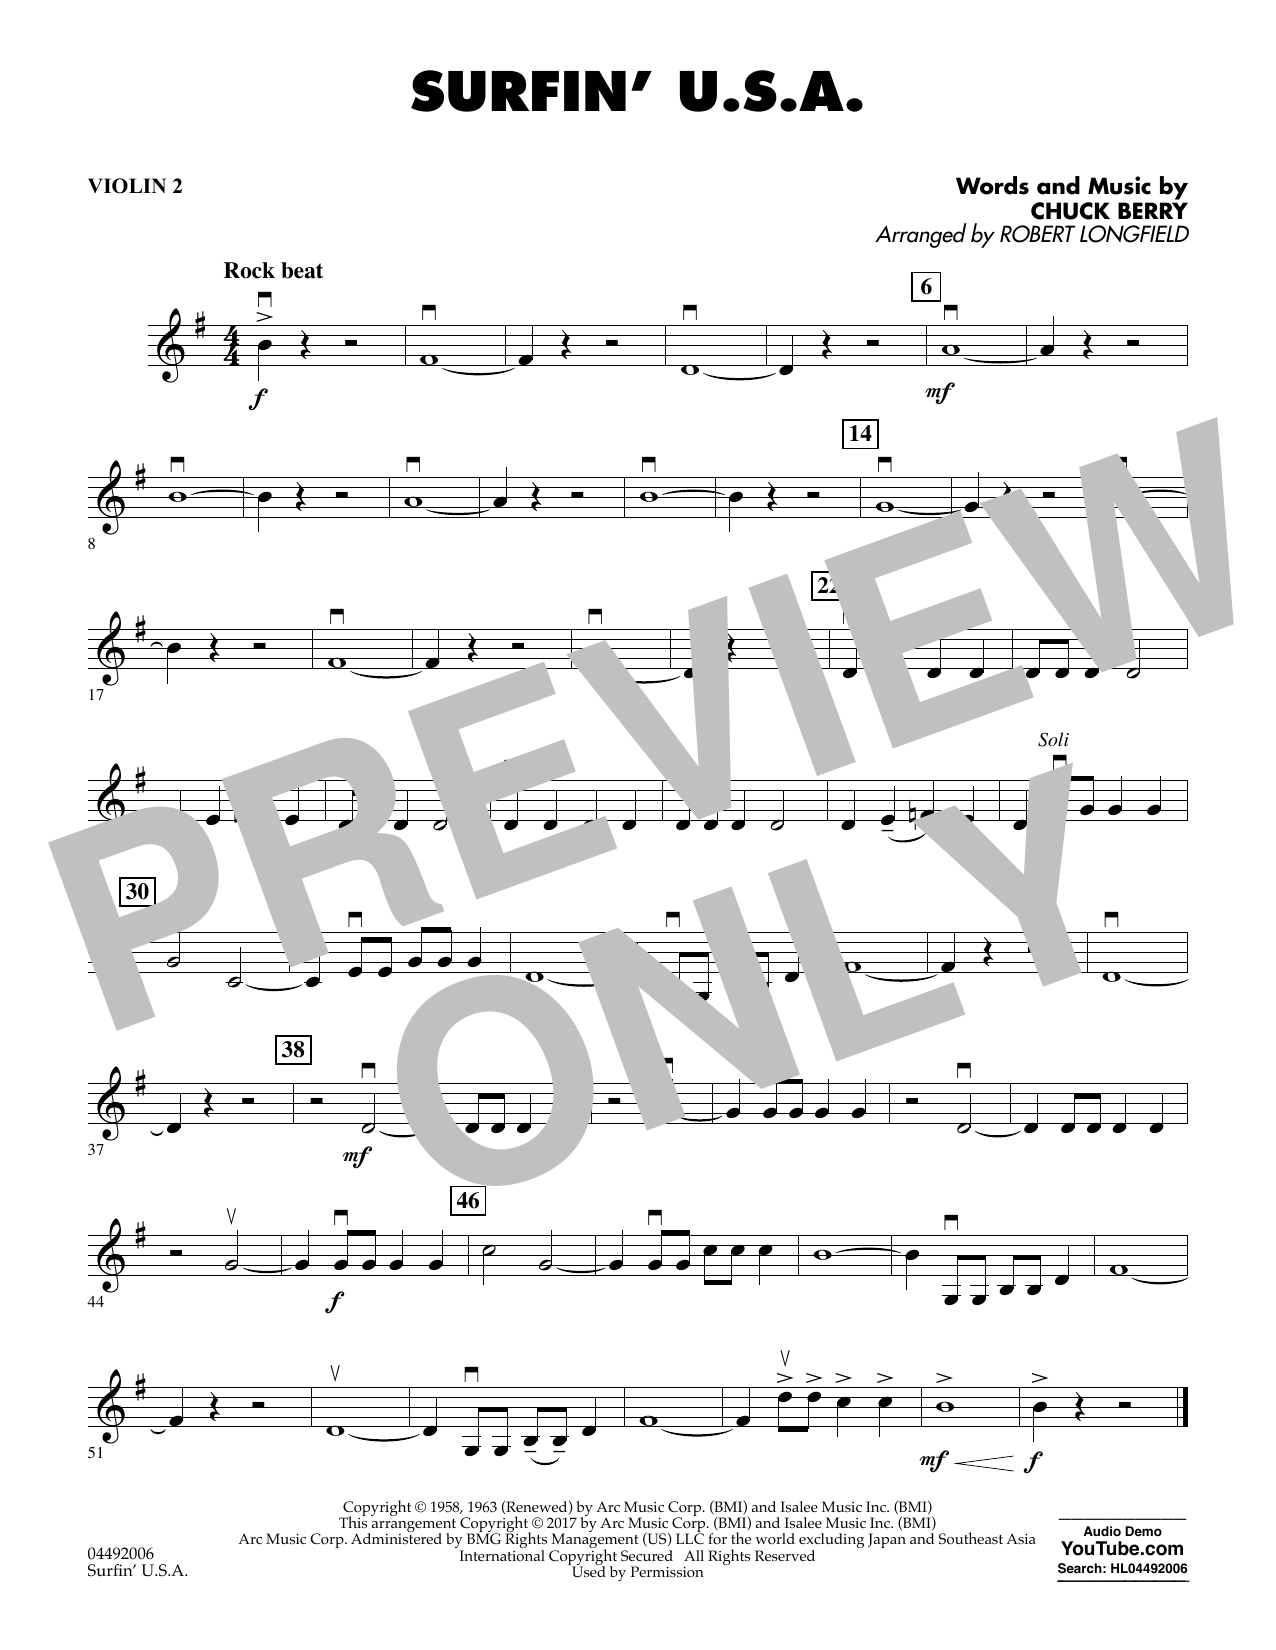 Sheet music digital files to print licensed chuck berry digital surfin usa violin 2 hexwebz Images